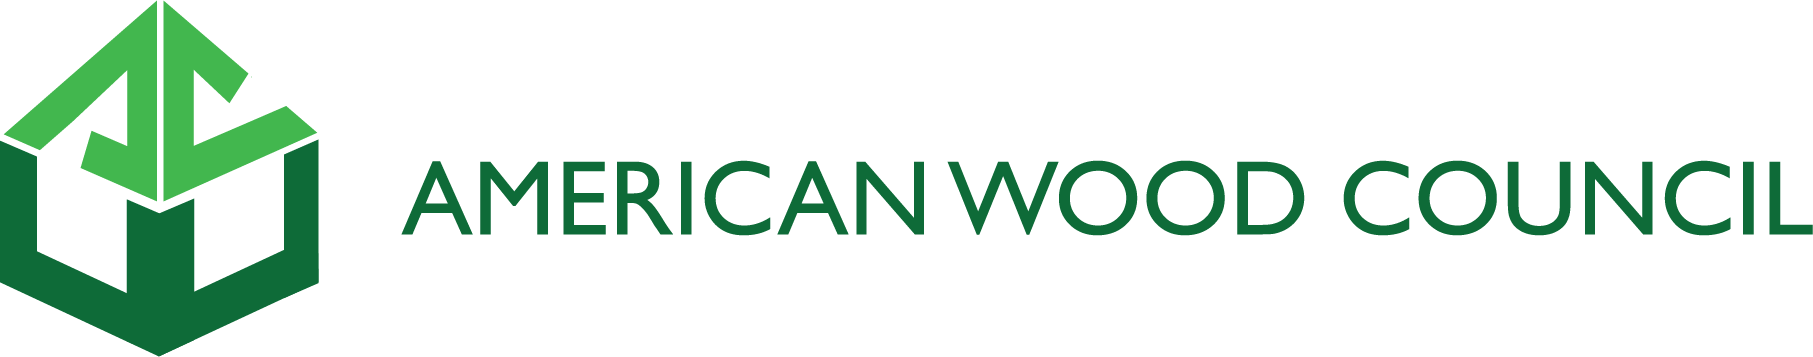 American Wood Council Logo